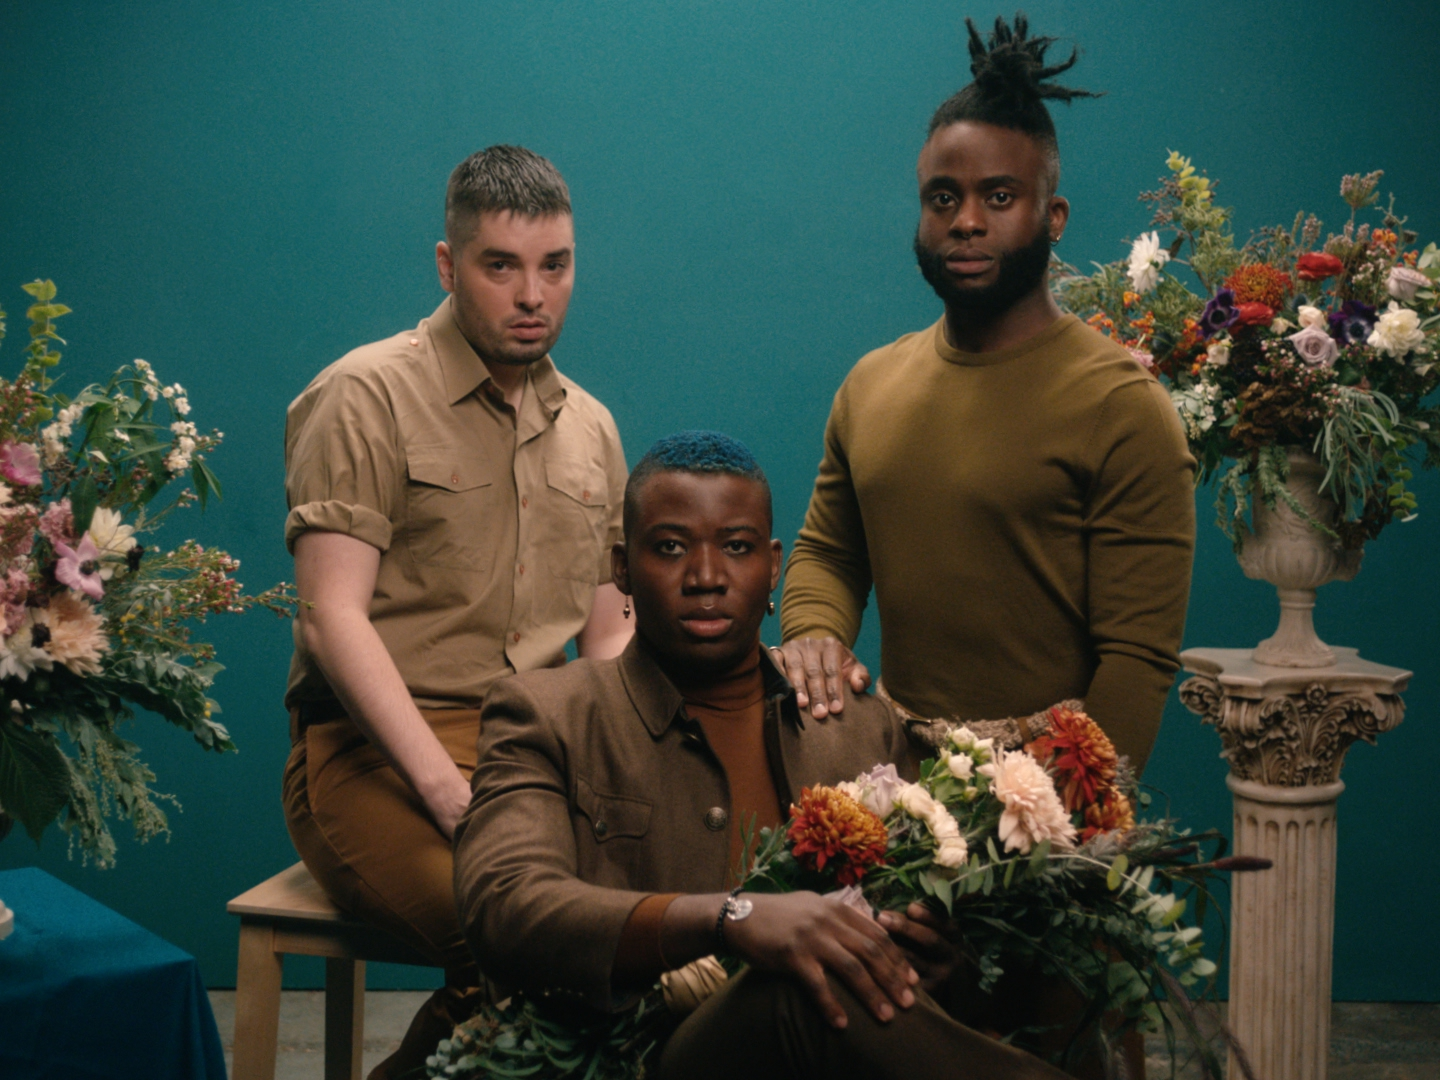 YOUNG_FATHERS_1.1.11.jpg